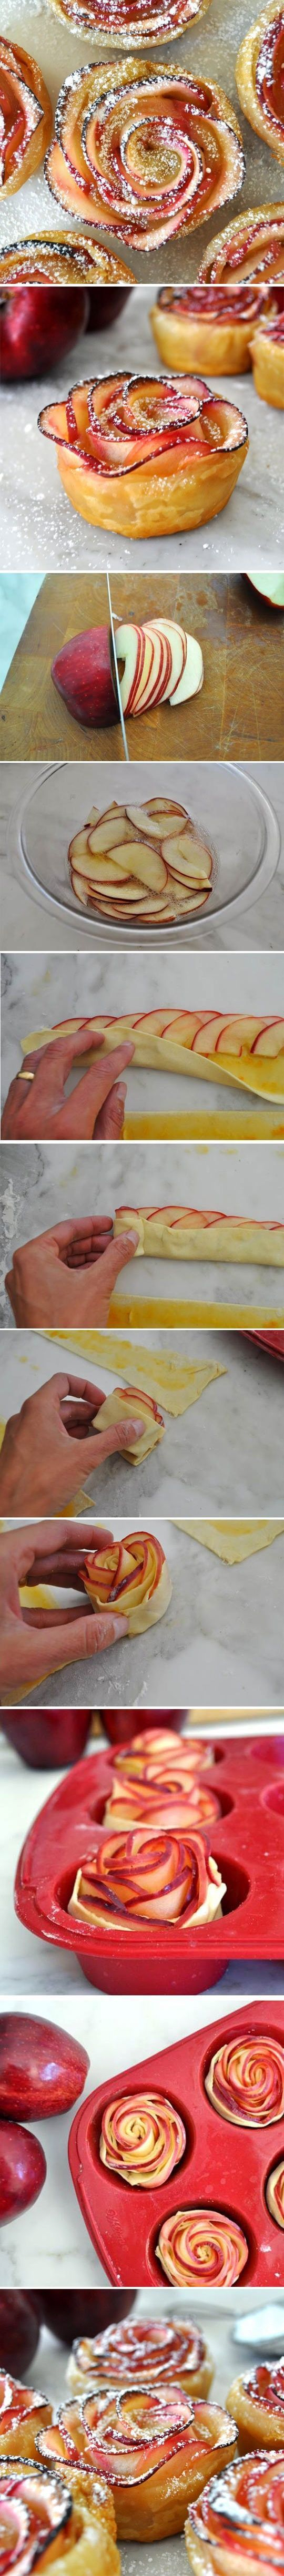 How to Make Apple Roses (cómo hacer rosas de manzana) By (por) Manuela